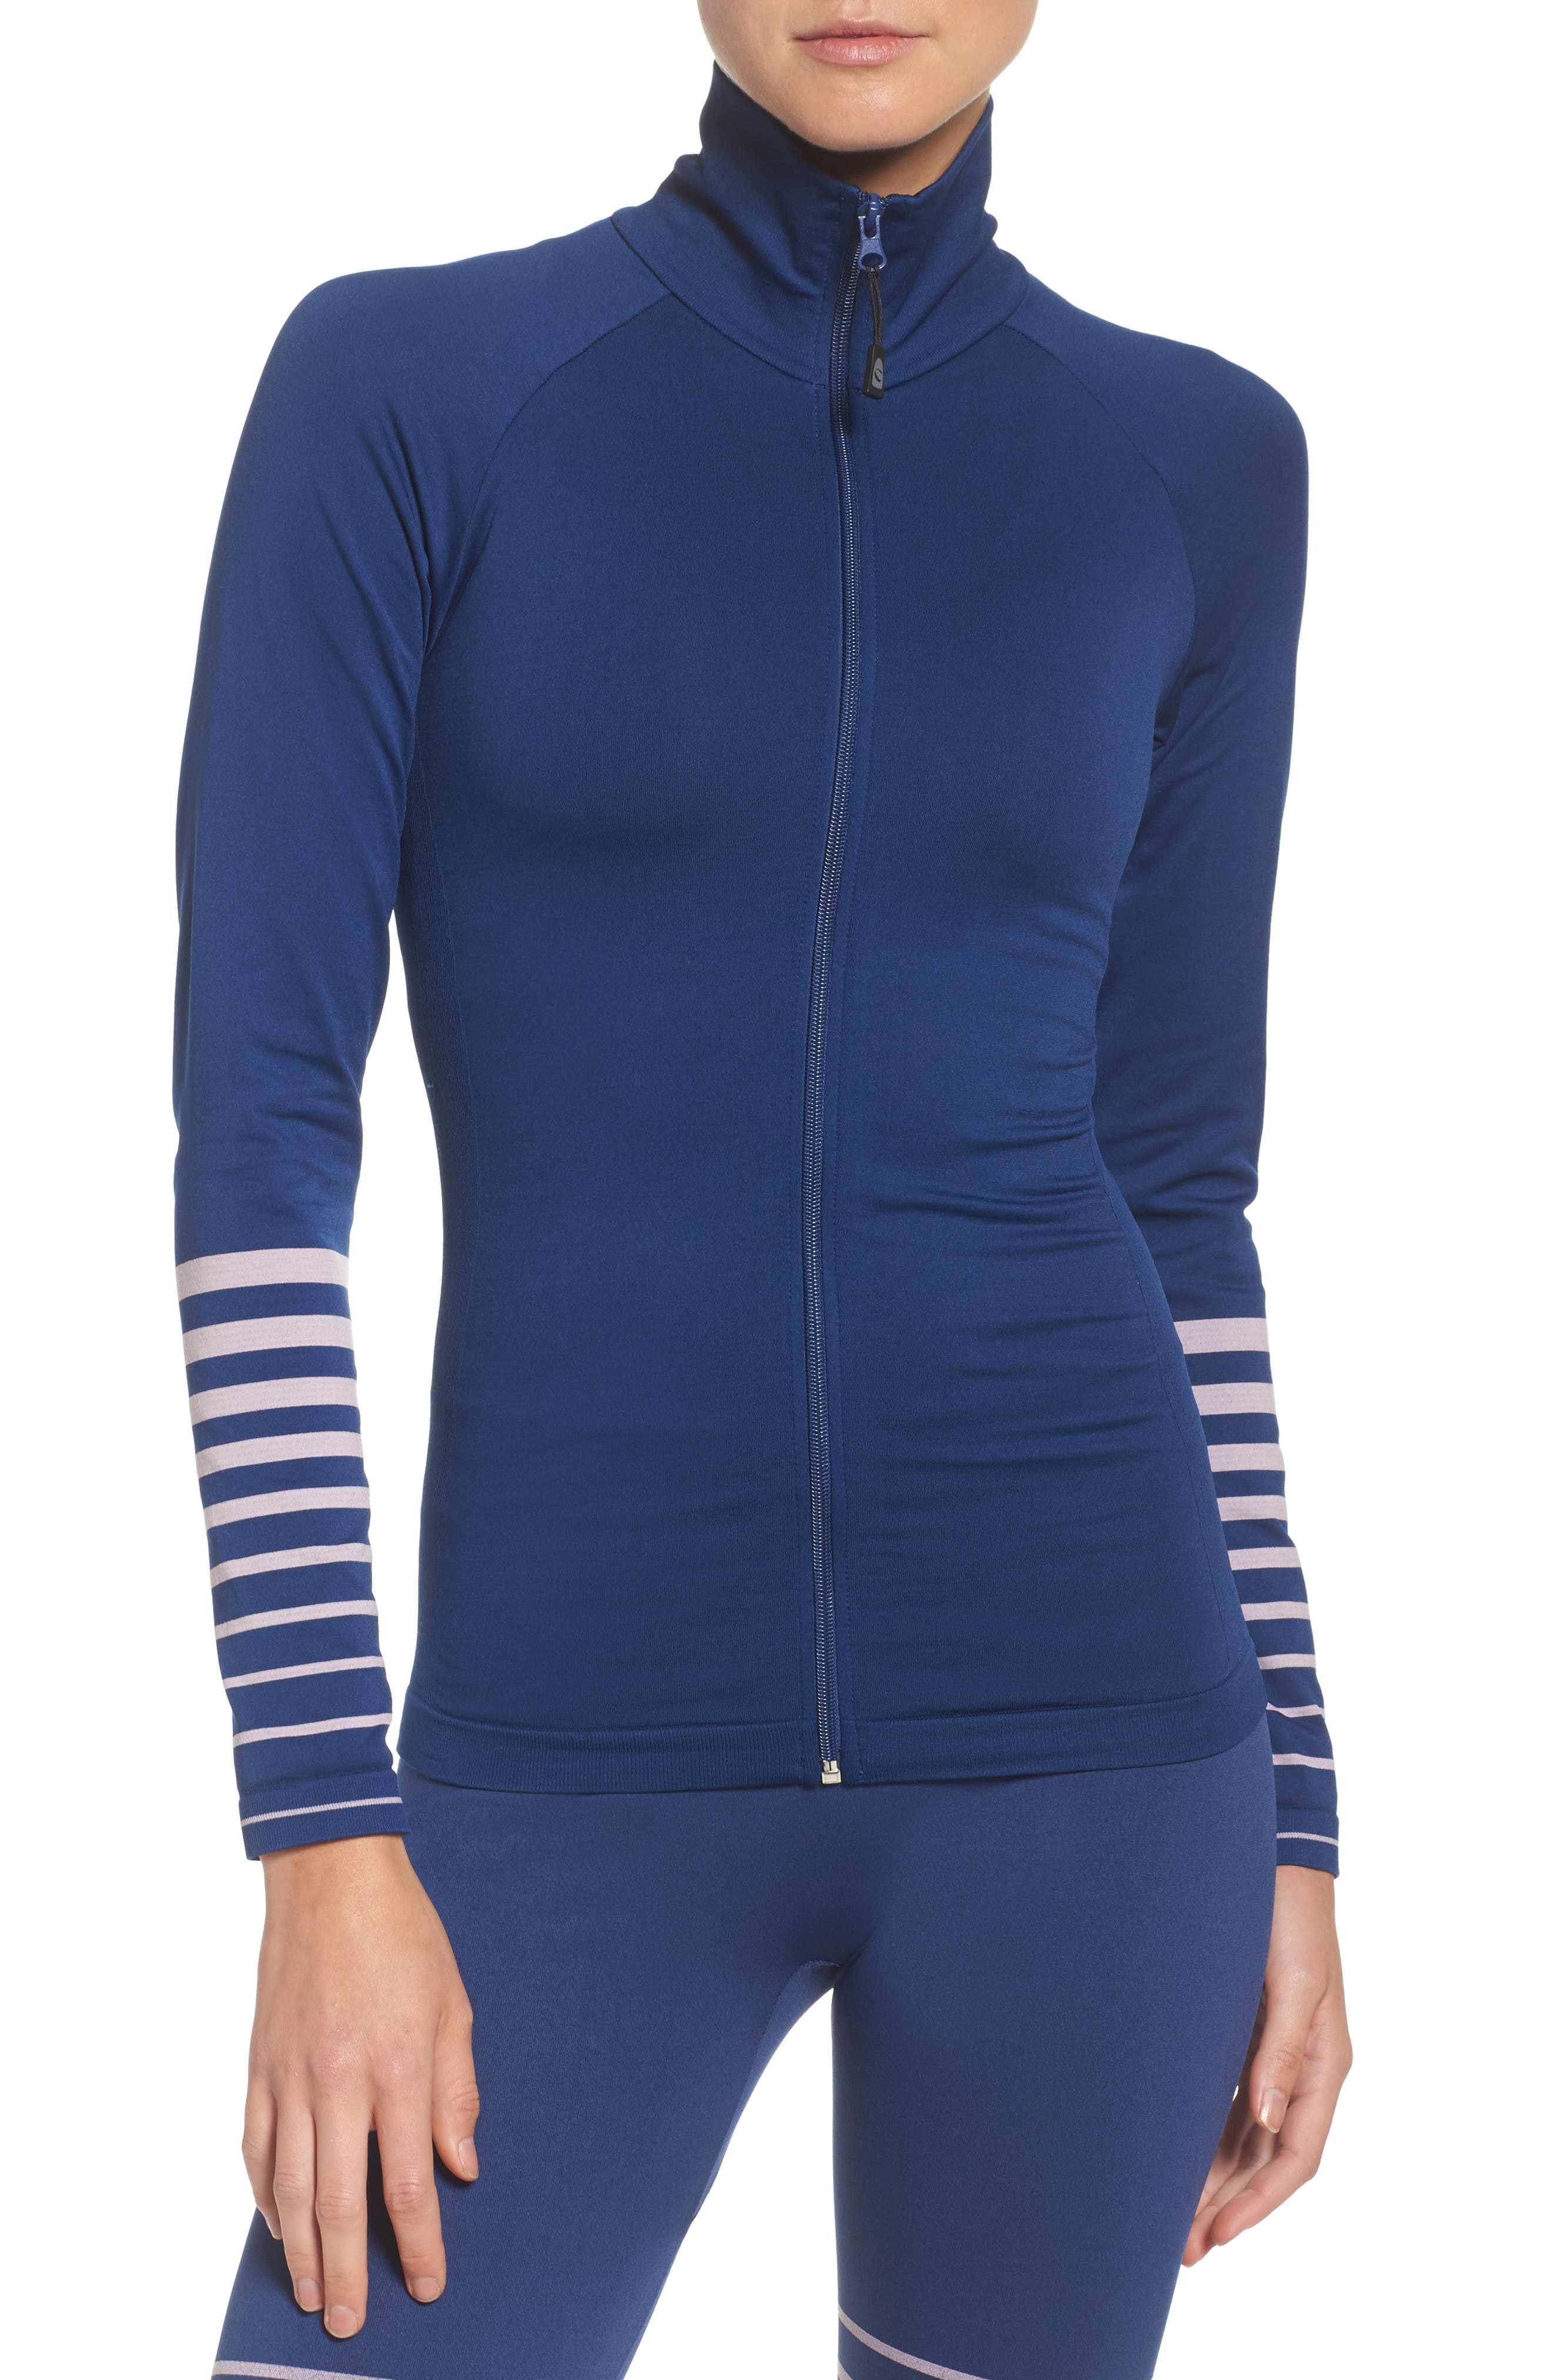 Finish Line Training Jacket,                             Main thumbnail 1, color,                             Estate Blue And Crystal Pink